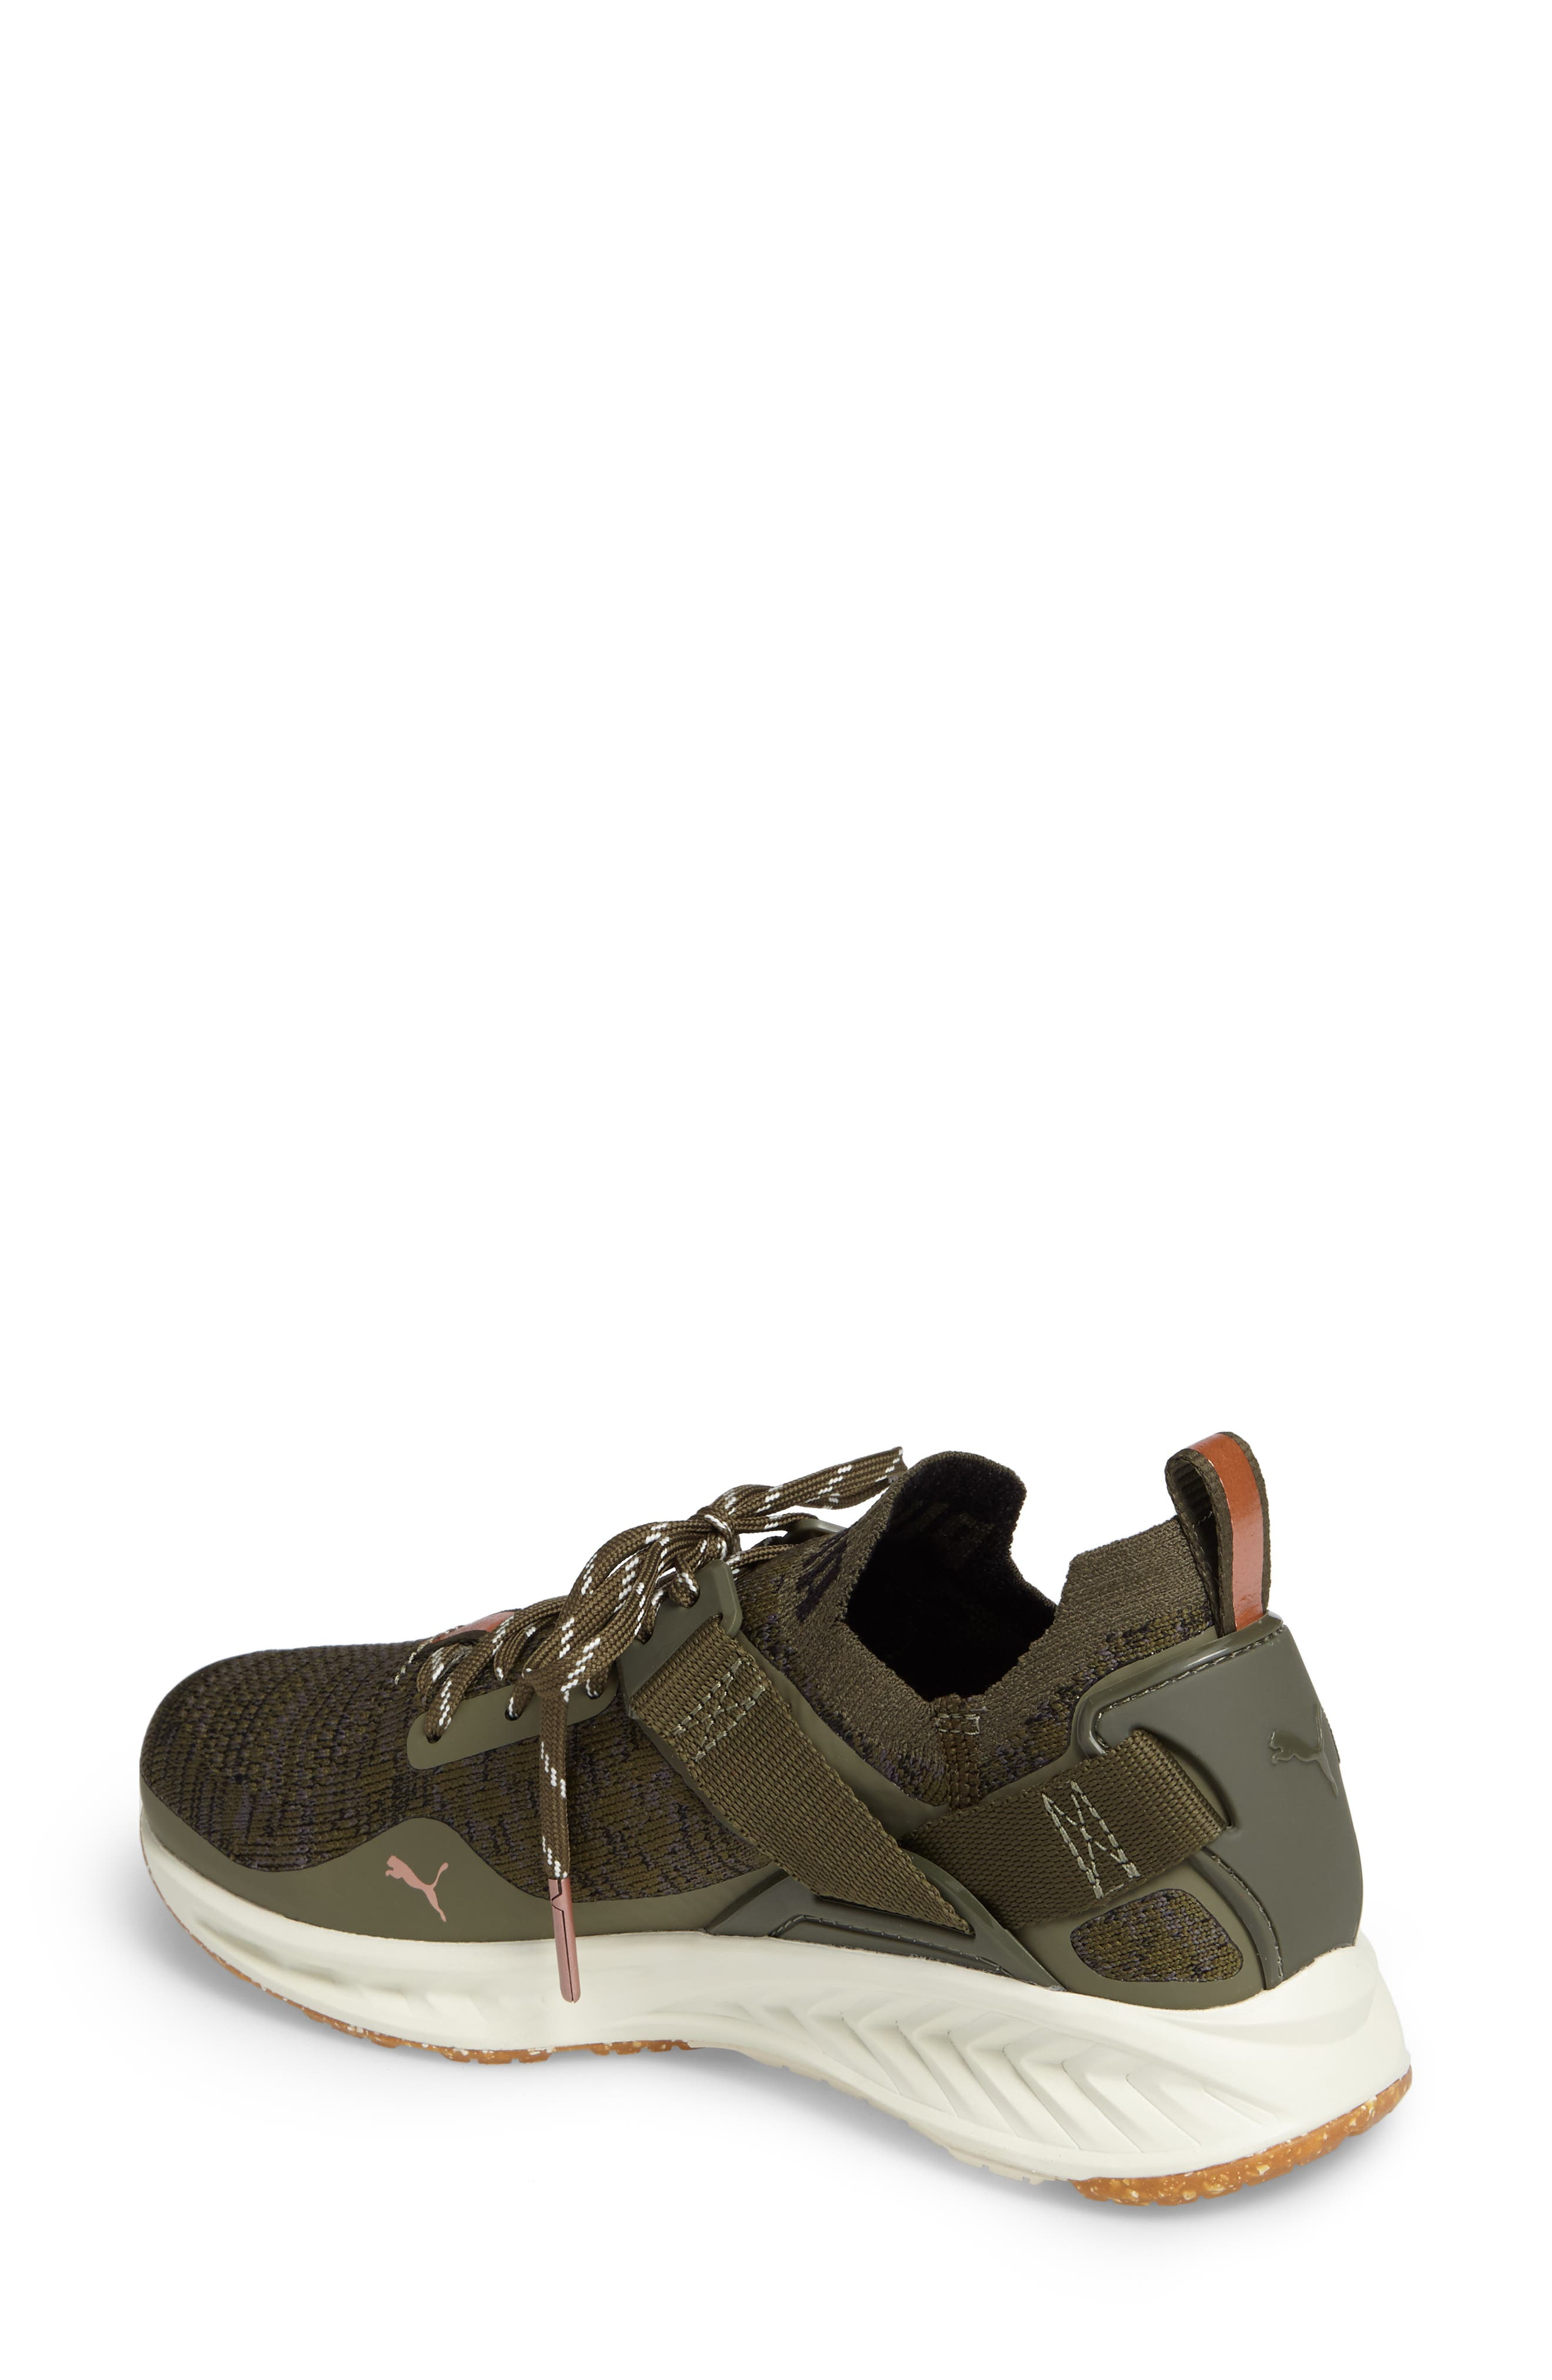 IGNITE evoKNIT Low Sneaker,                             Alternate thumbnail 2, color,                             Olive/ Black/ Quiet Shade